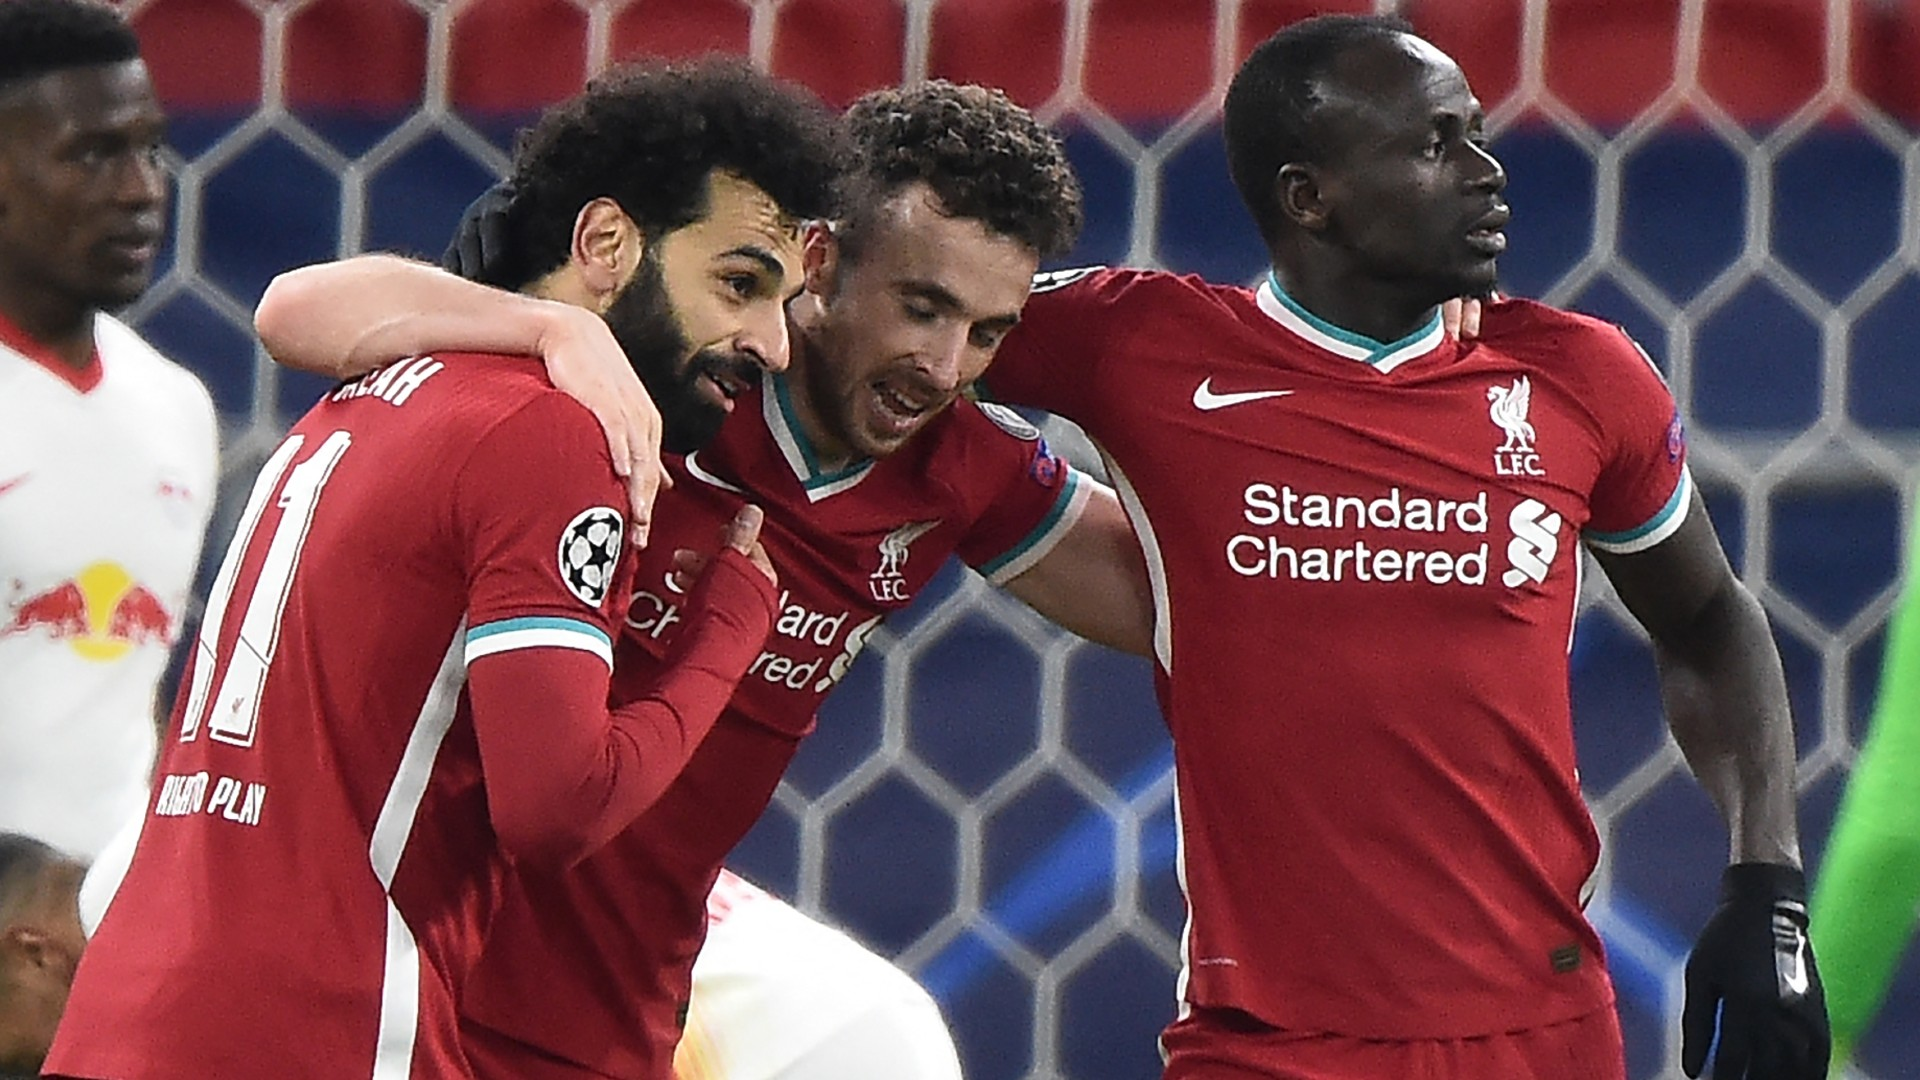 Salah continues scoring form, Mane on target as Liverpool beat RB Leipzig to advance in Champions League